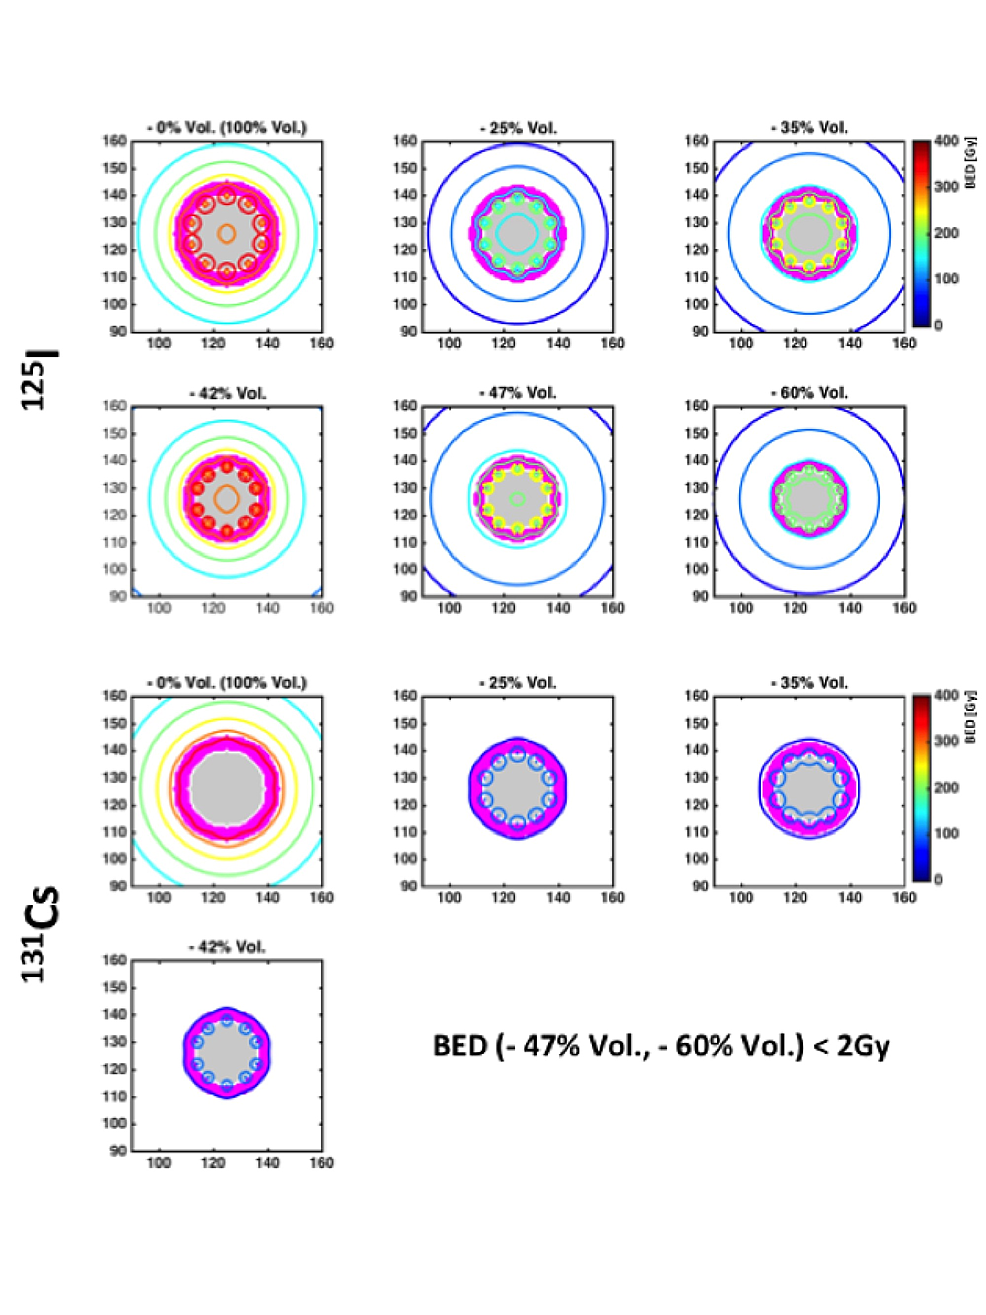 Comparison-of-the-planar-isodose-distributions-(within-the-transverse-cross-sectional-x-y-planes)-between-I-125-and-Cs-131-at-0,--1.7,-3.6,-5.9,-11.7,-and-20.5-months-after-the-implant-procedure